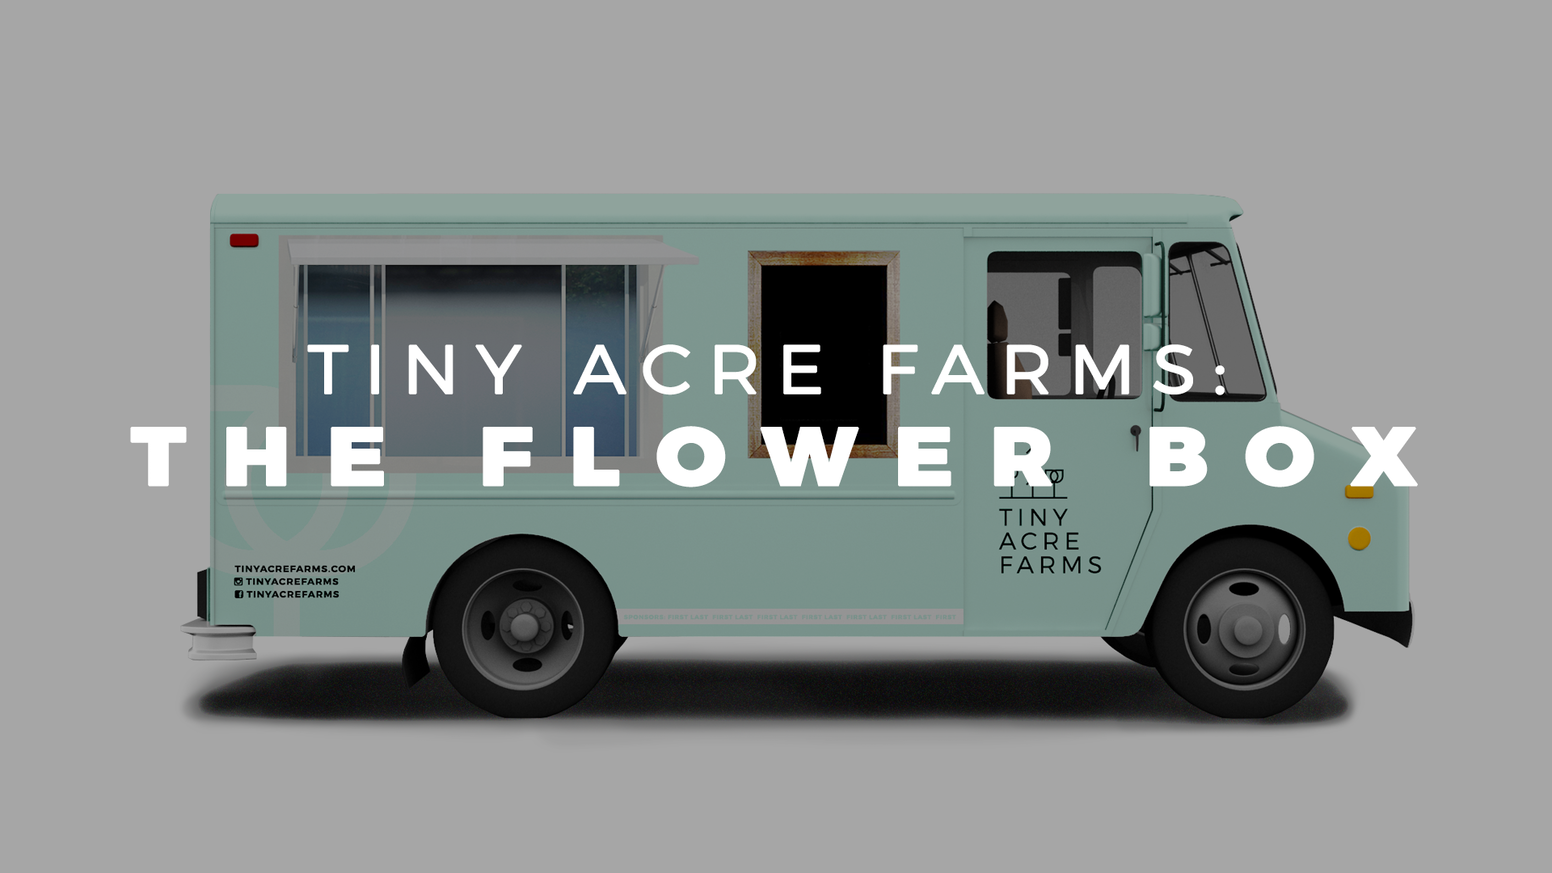 The Flower Box will bring the locally grown movement to the streets of Des Moines with the city's first mobile flower truck.